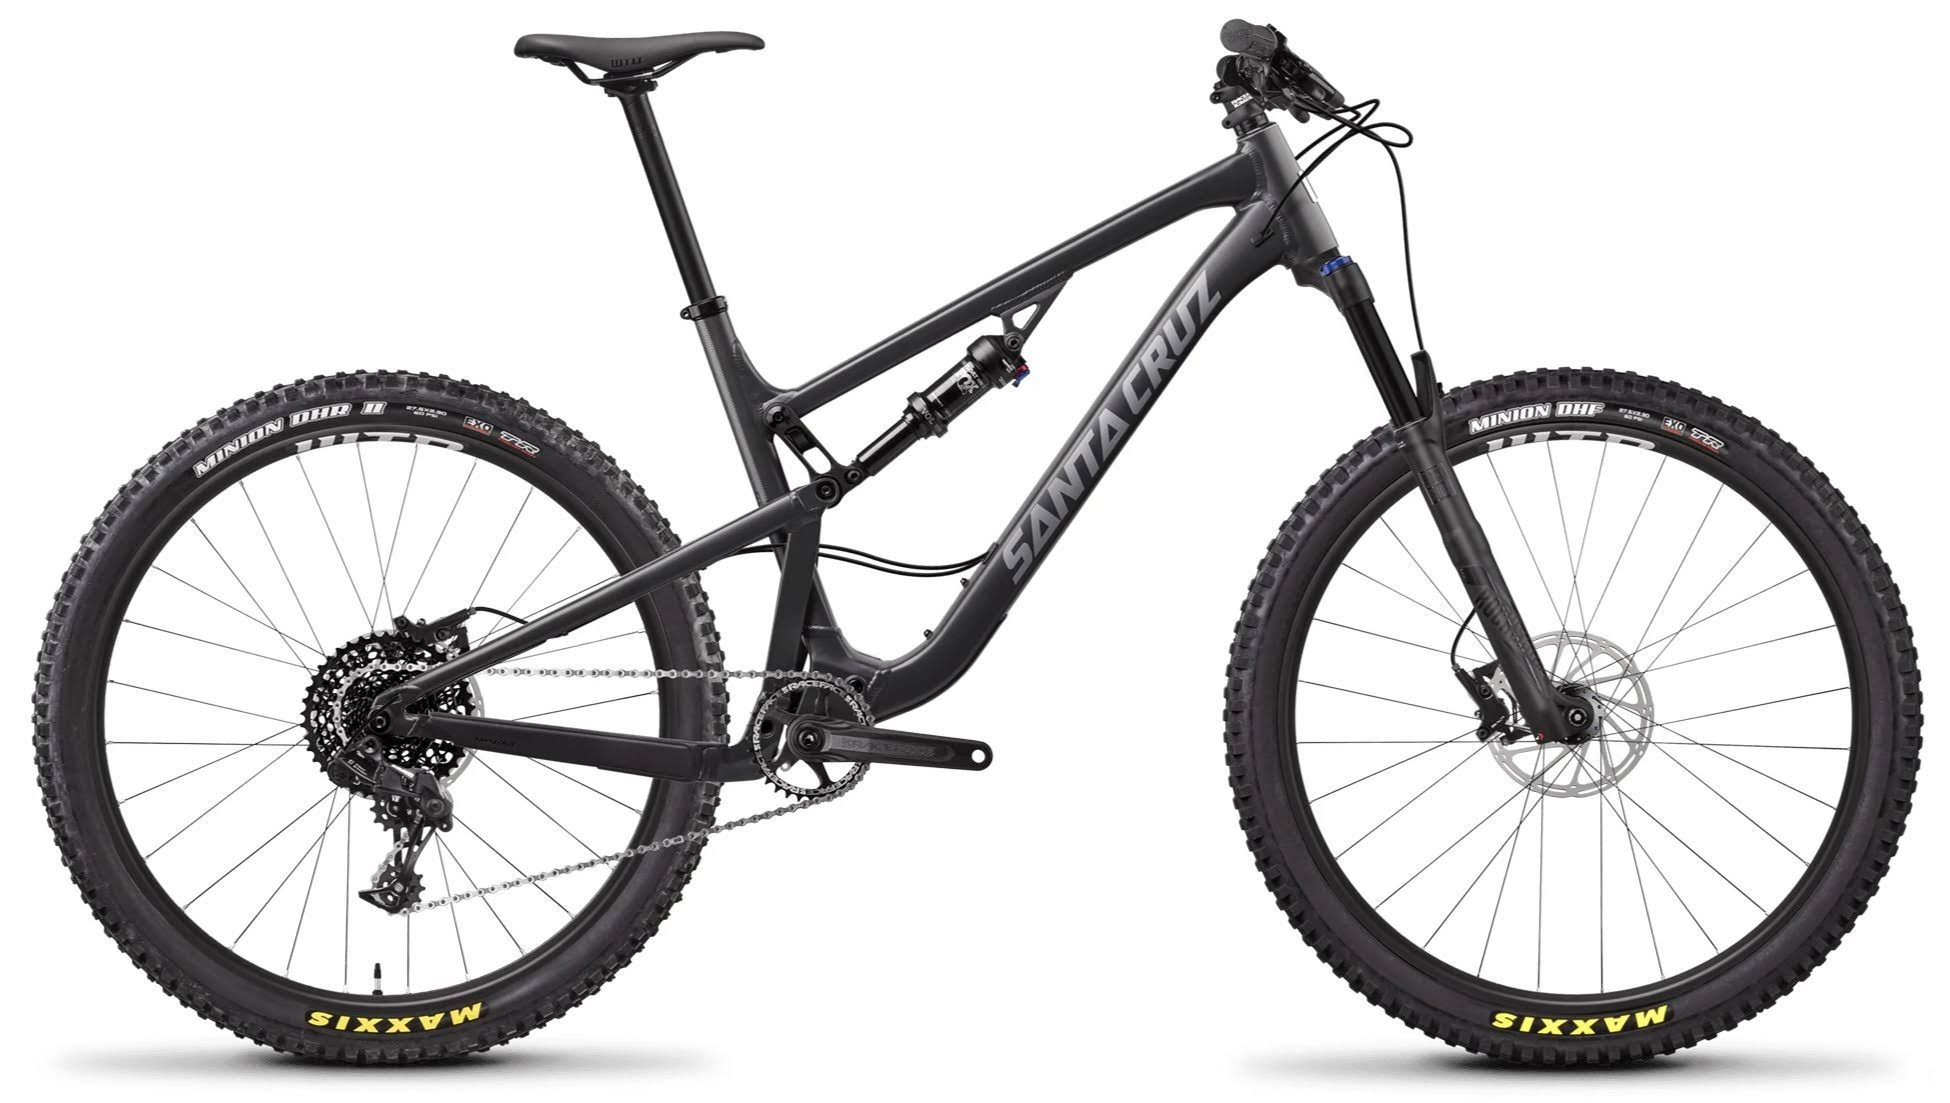 Santa Cruz 5010 Aluminum D Mountain Bike - Black, Medium